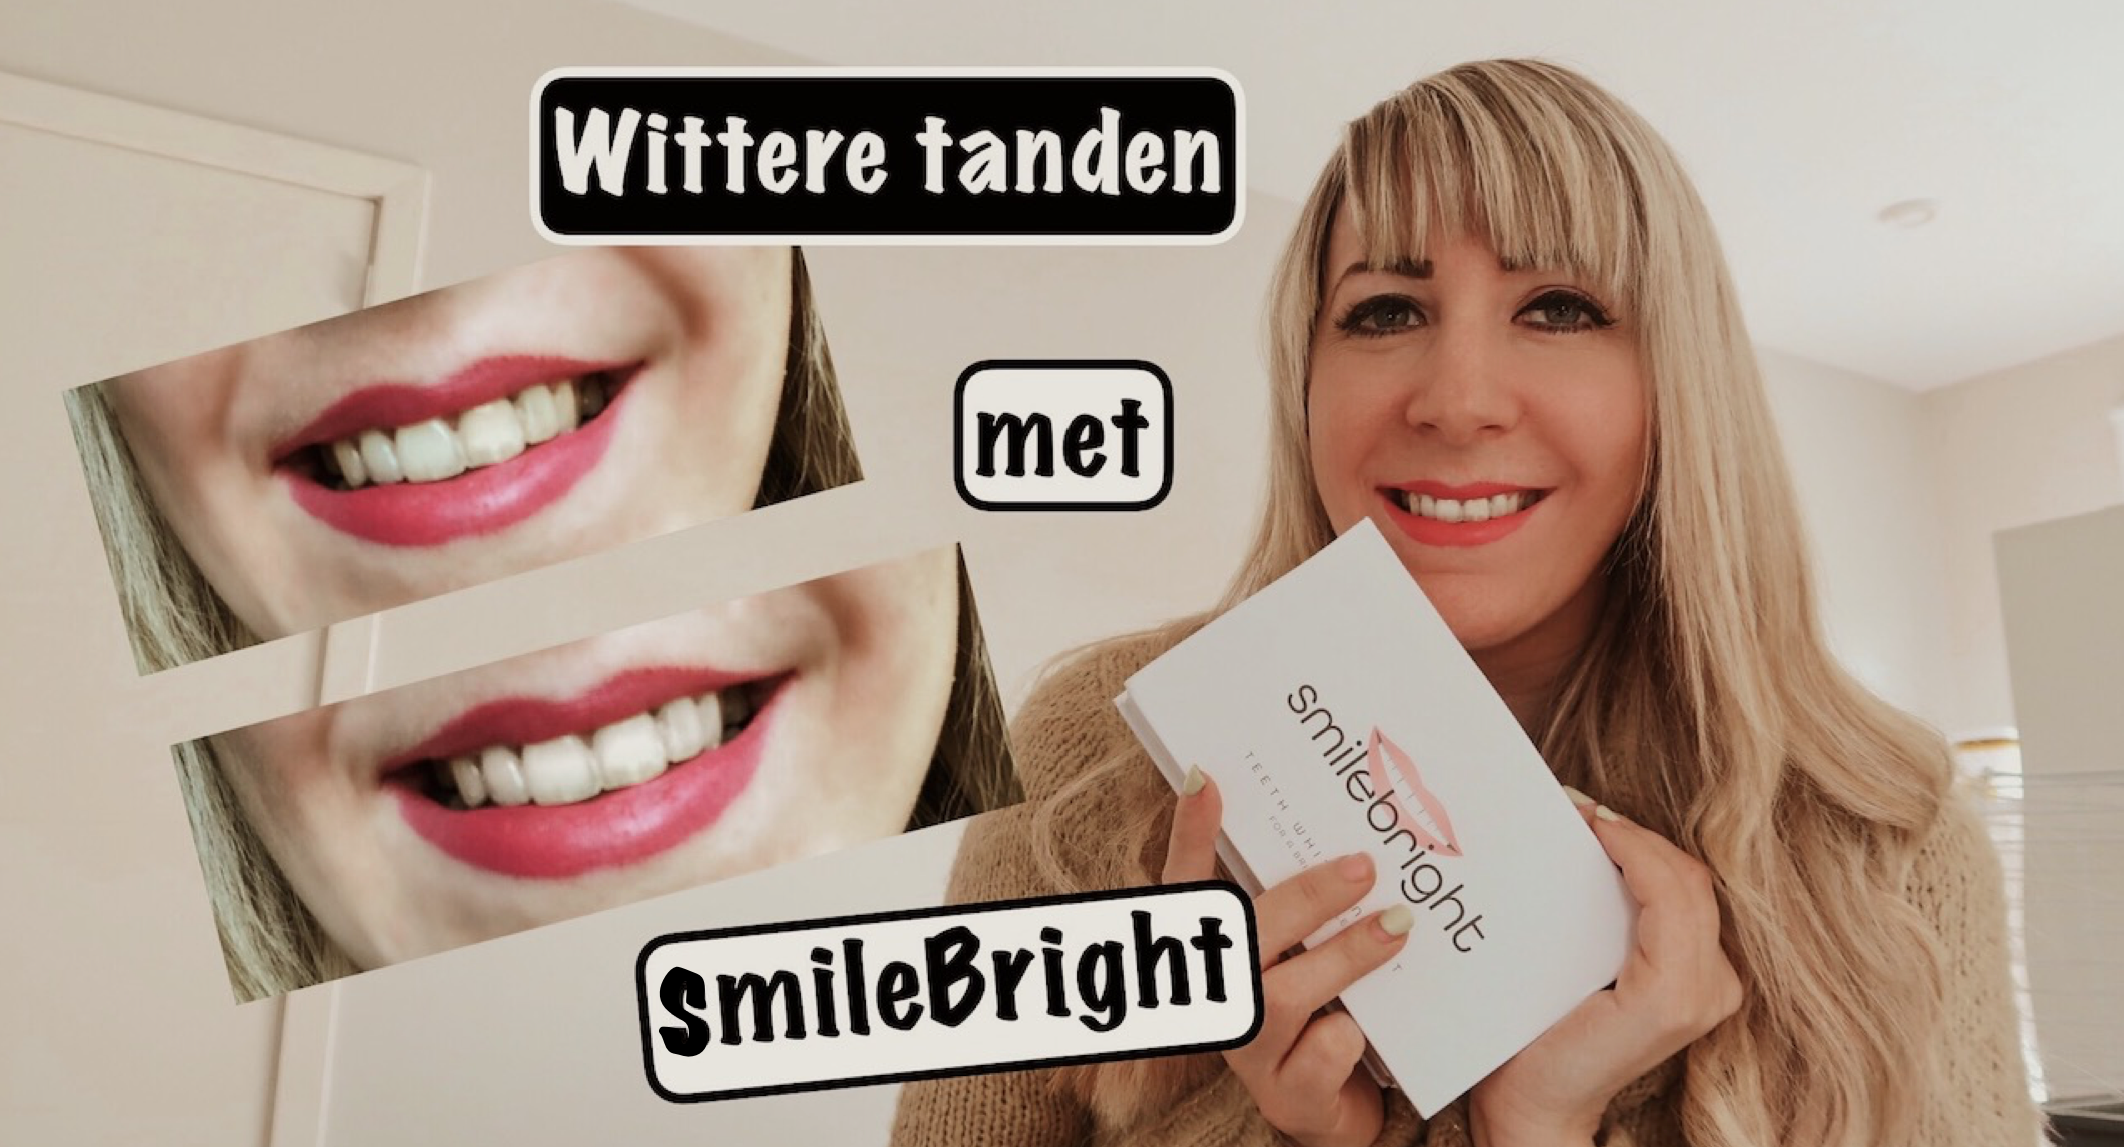 jennaminnie jenna minnie fashion blog Wittere tanden met SmileBright